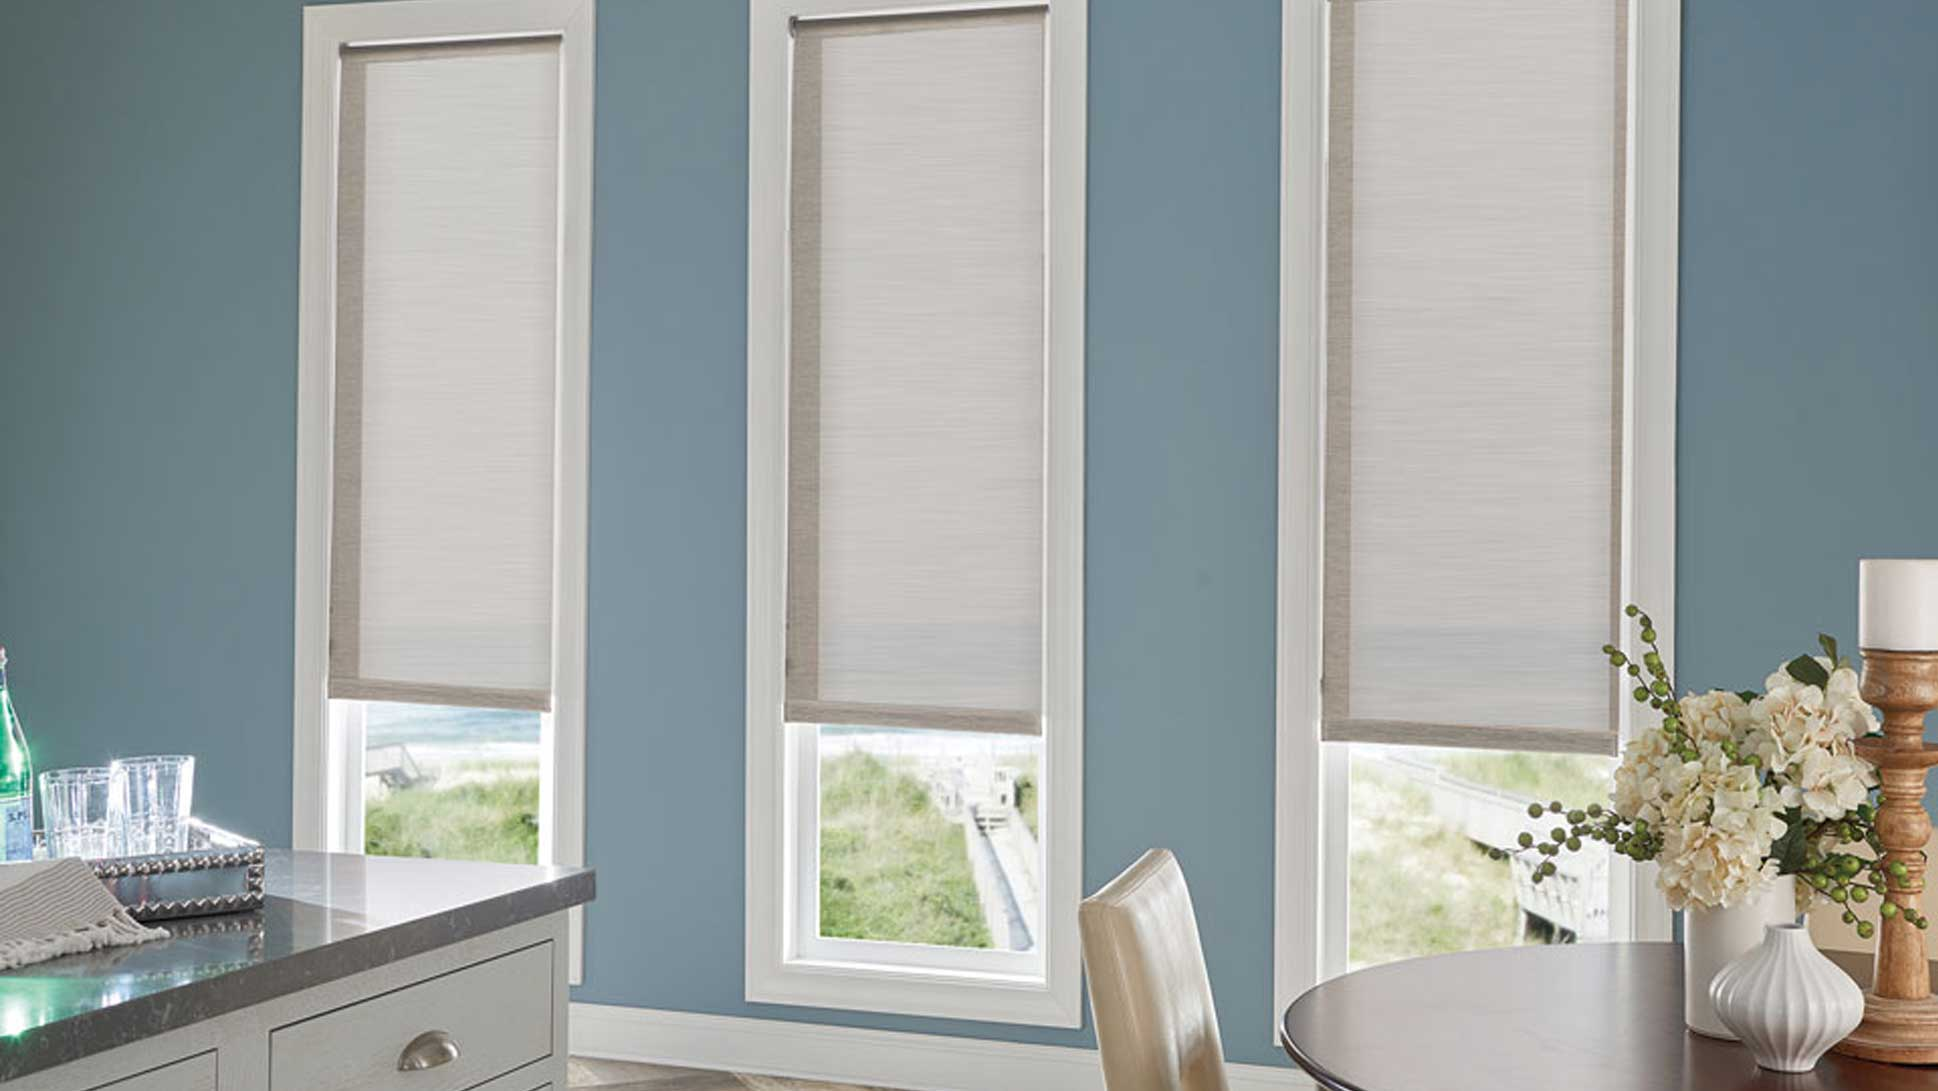 Los Angeles Shades And Blinds Professional Shade And Blind Installation And Repair Services In Los Angeles